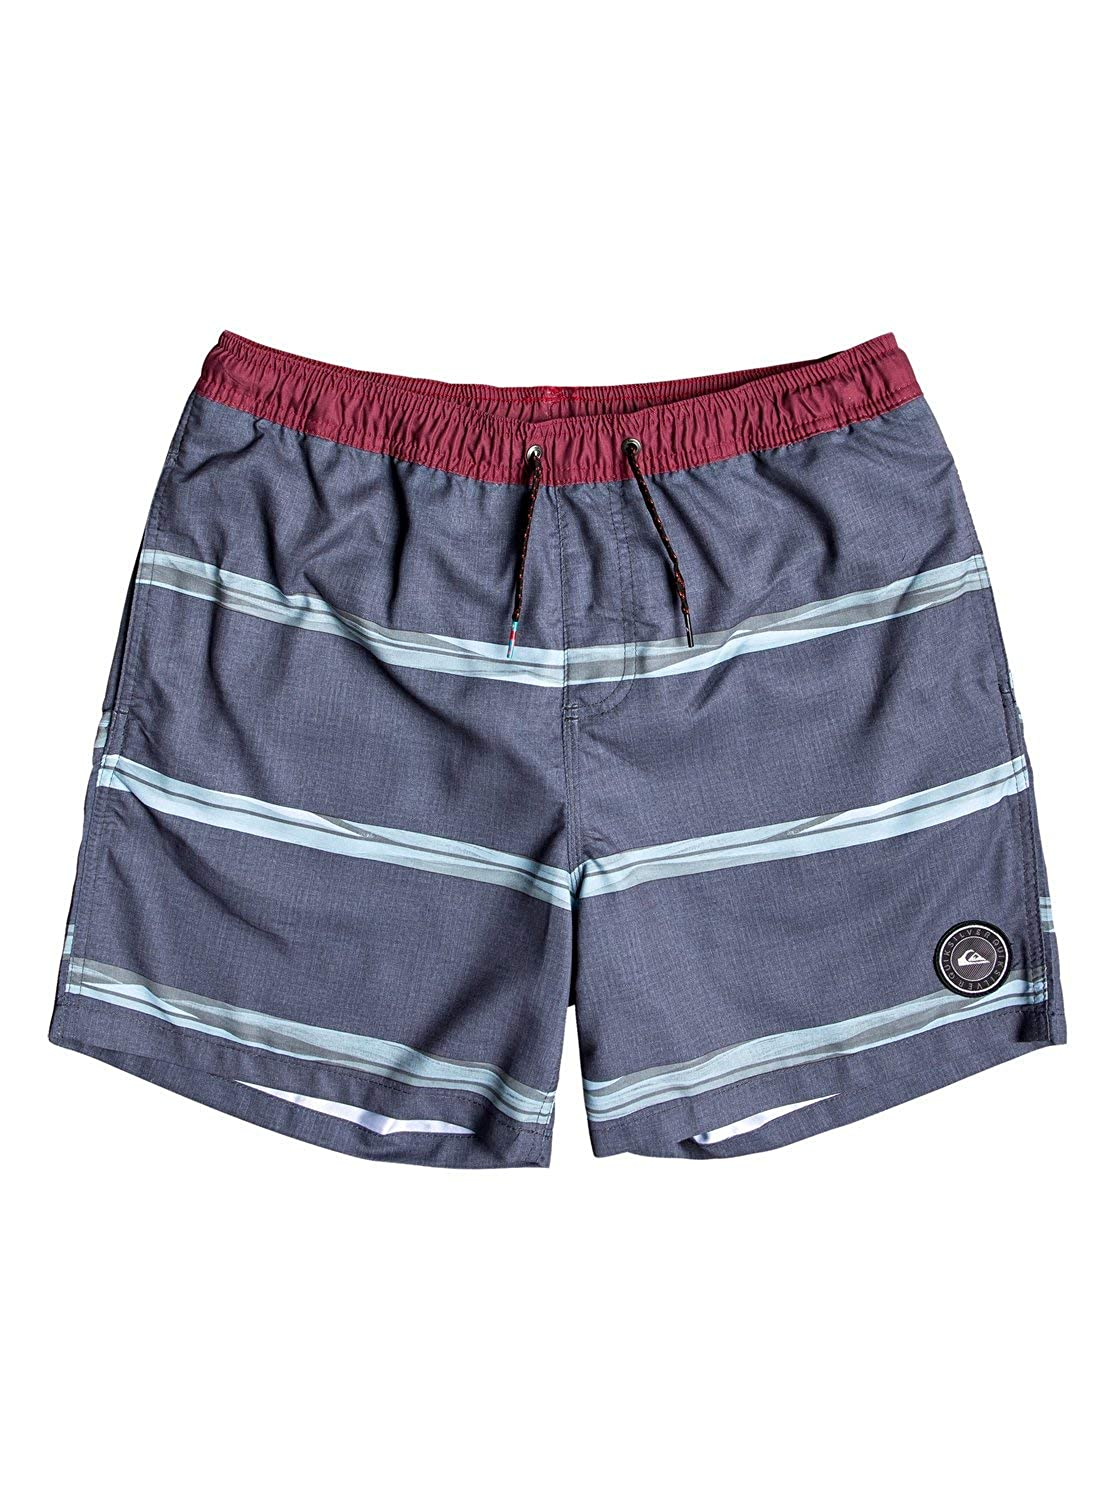 Quiksilver Mens Dunes Stripes Volley 17 Nb Swim Shorts